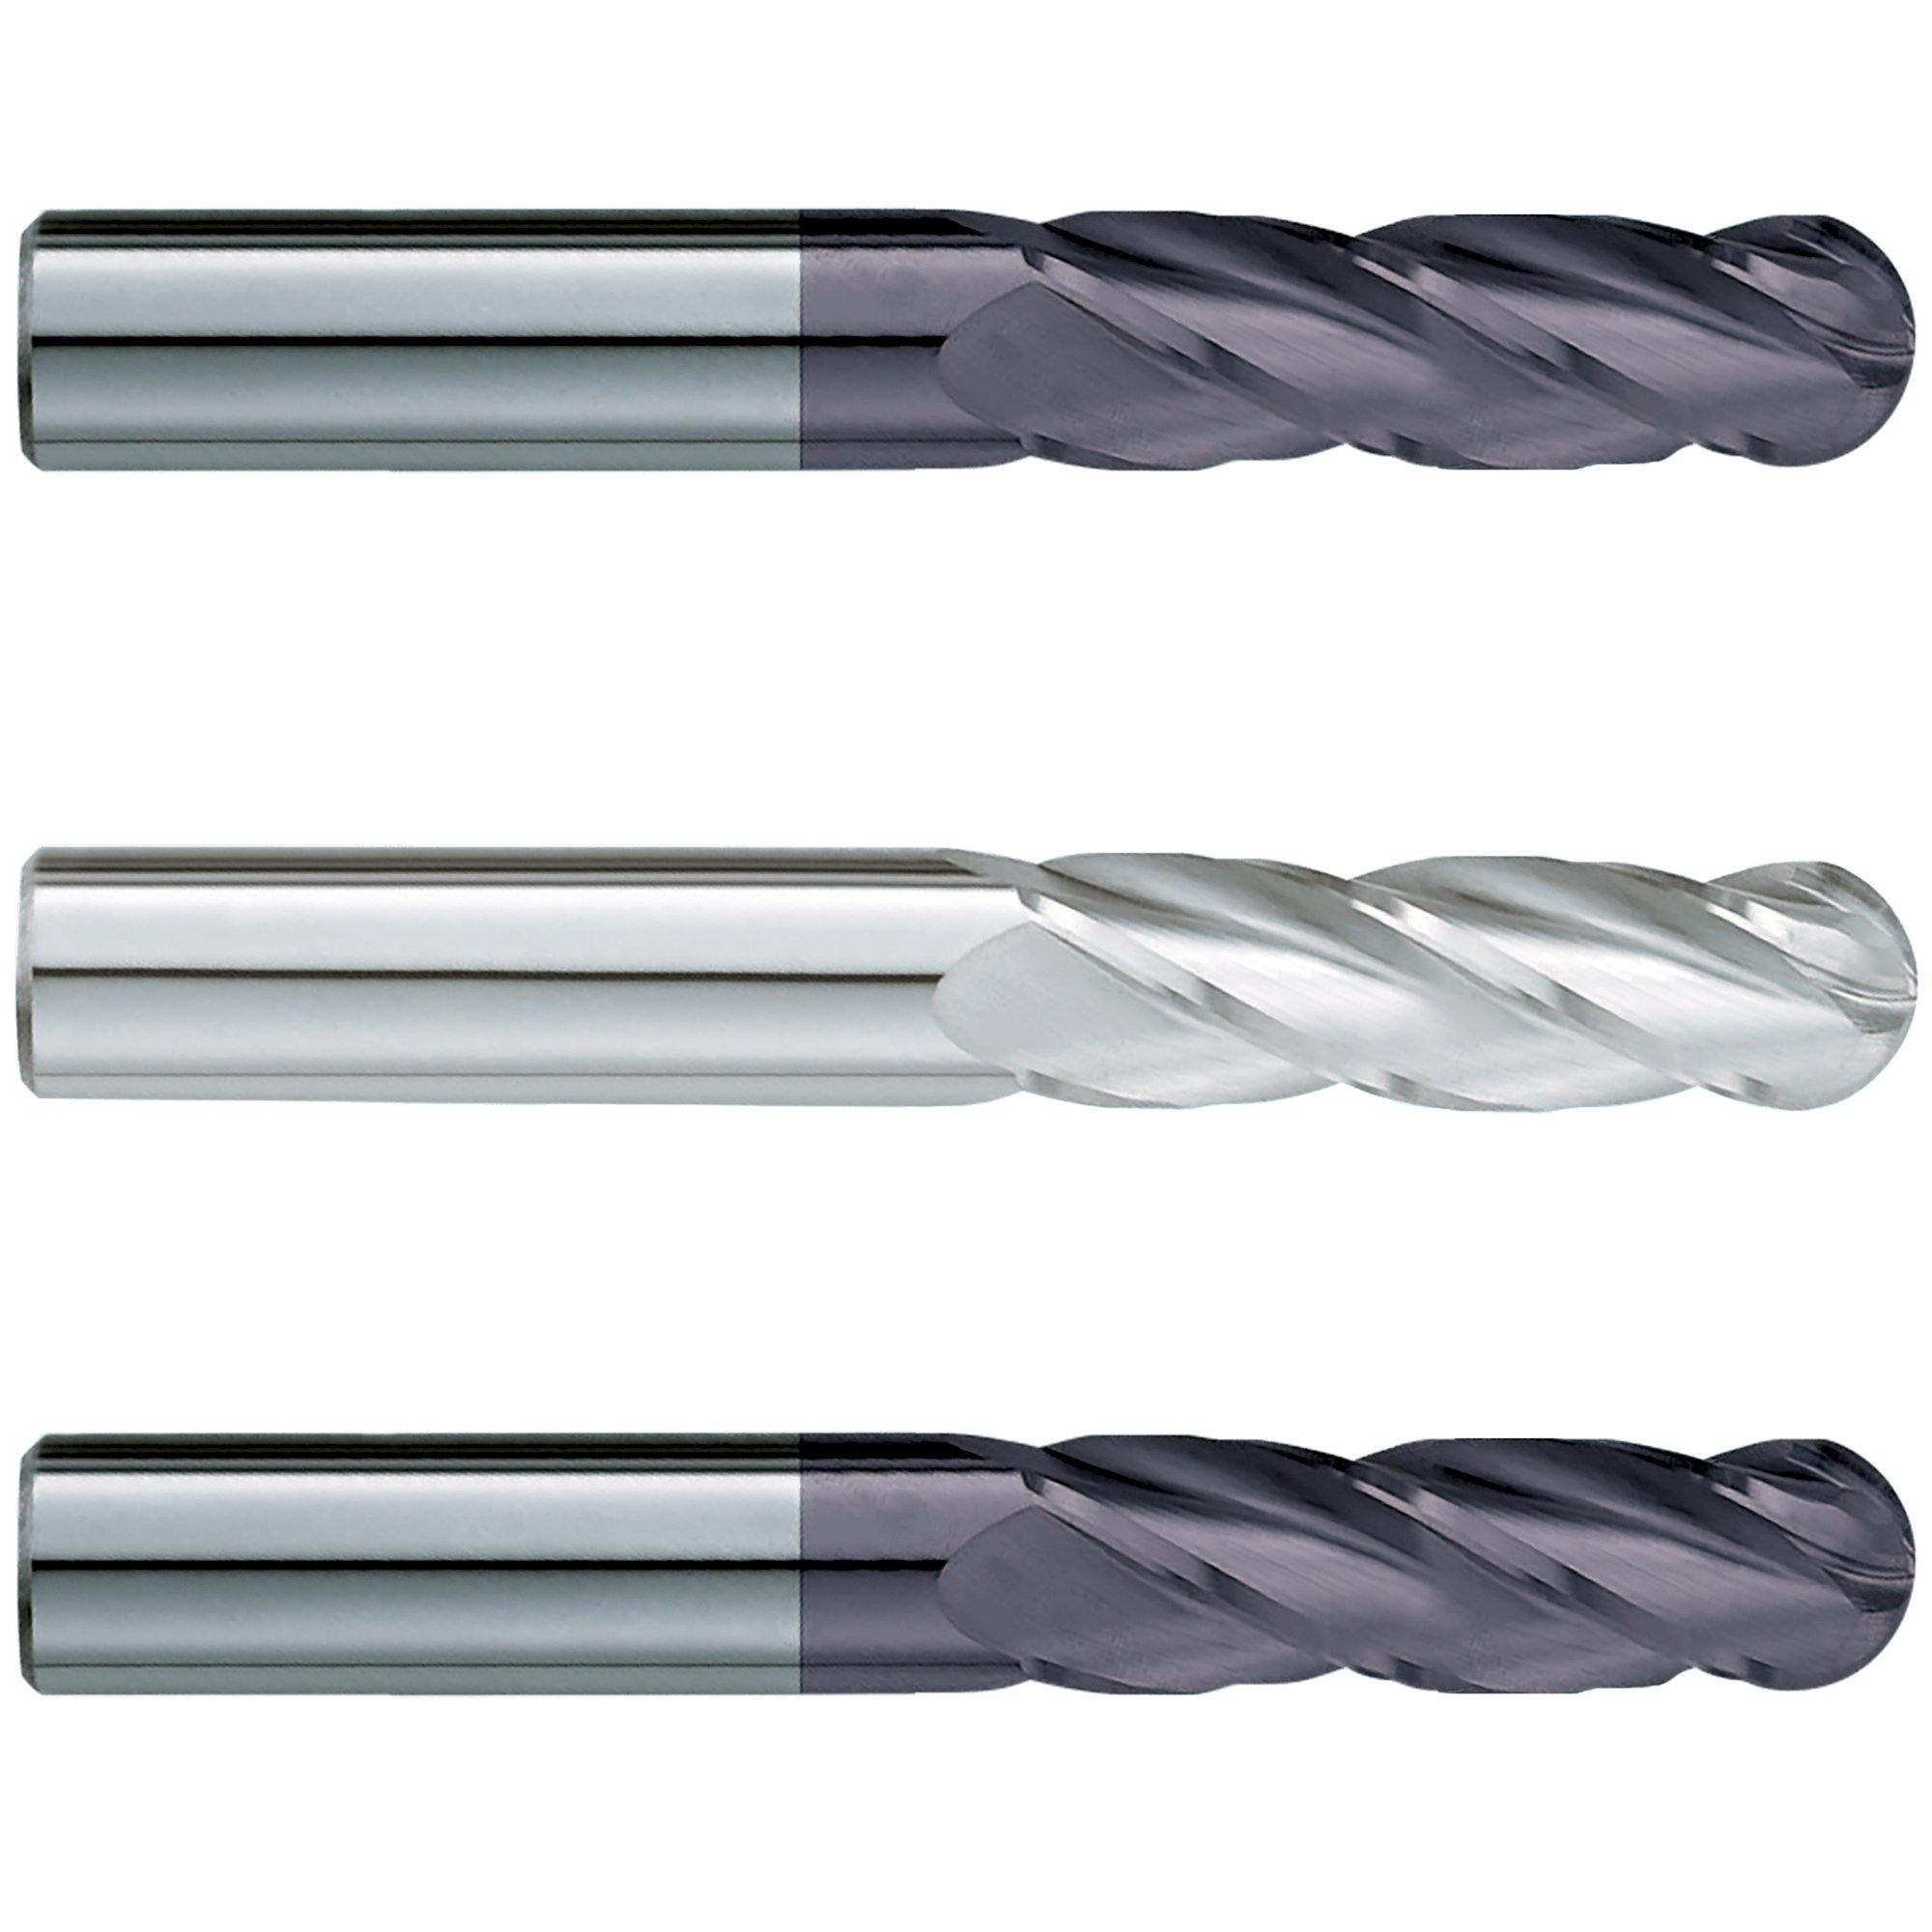 "(3 Pack) 5/8"" x 3"" x 6"" Extra Long Ballnose Carbide End Mill - End Mill Store"